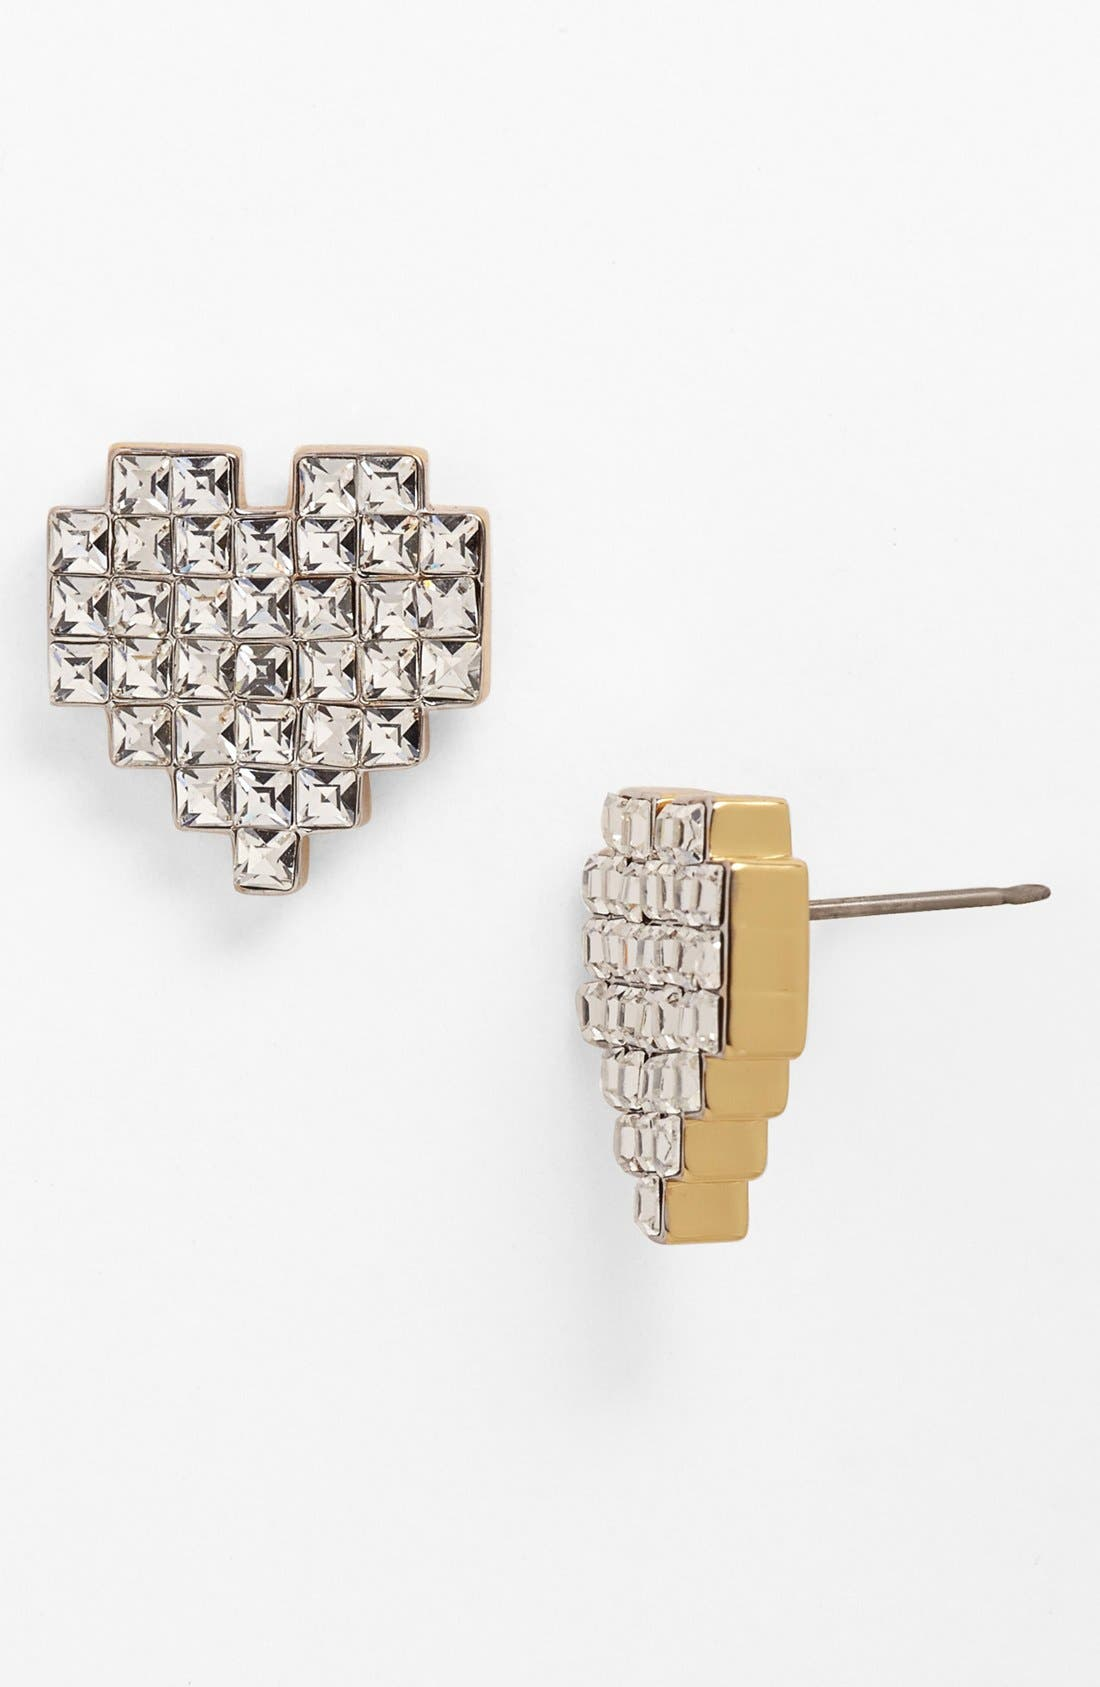 Main Image - Juicy Couture 'Heart of Gold' Pixel Heart Stud Earrings